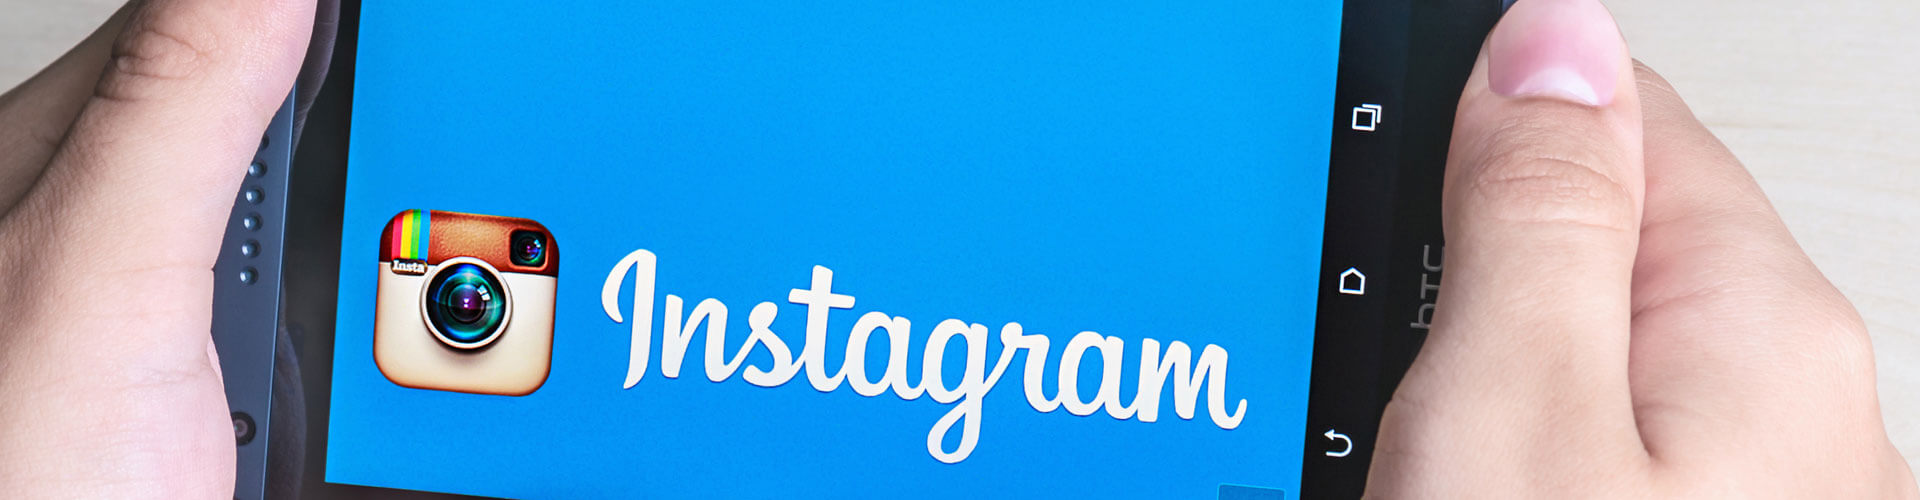 Instagram Marketing Strategies Which Work all the Time